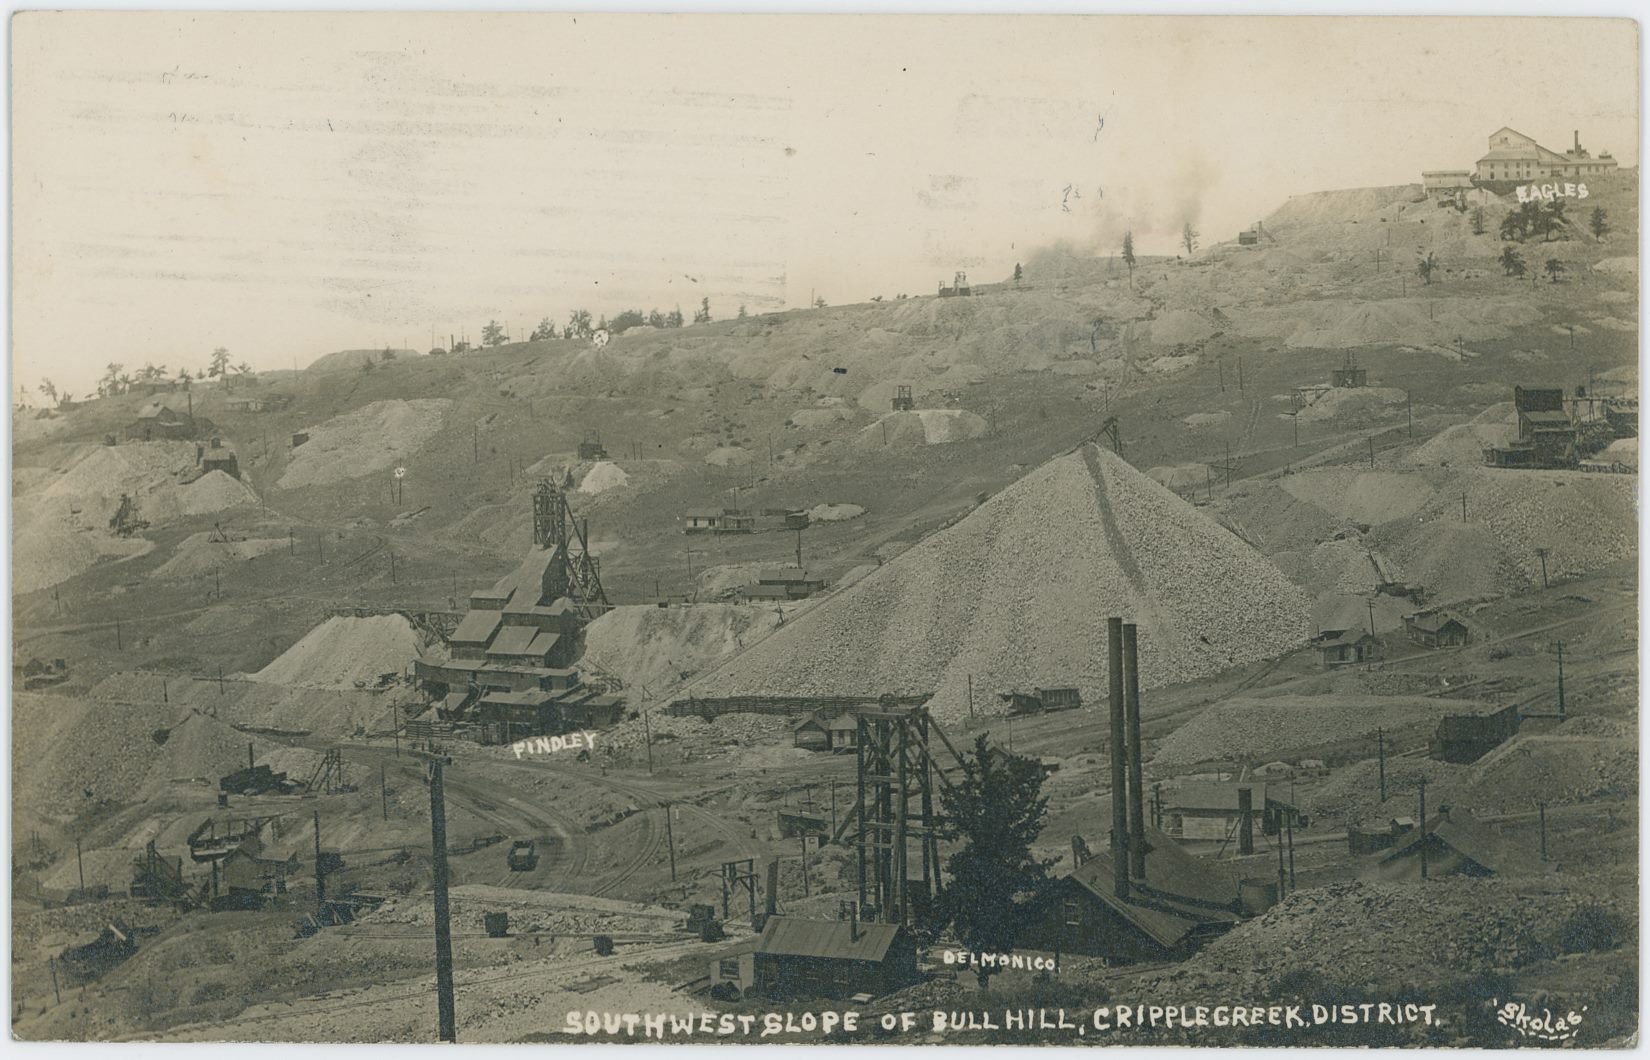 This view at mining operations on Bull Hill, is hampered sadly by the fact that the paper this postcard is made on is one of those not so good one, and while it scanned useful it is not very good as the dark areas are just dark, and there is some silvery like parts in those darker area, also messing with my scan.    The scene itself is an interesting one, as it captures and identifying some of the mines at this area of Bull Hill, also shows the Golden Circle trackage in this area, with lots of small mine operations around on the ground, with homes and houses spread around and growing huge dumps.    In upper right corner the American Eagle Shaft House and mine operation is seen marked as 'Eagles' while further down along the right-hand side, the Ore-House of the Shurtloff No. 2 Mine is seen about 2/5 down – this had a side-spur, leaving the mainline of the Golden Circle about halfway up the route around Bull Cliffs on the south side, pieces of that spur is seen in lower foreground just above the word 'Cripple' in the card's title text along the bottom of this postcard view.